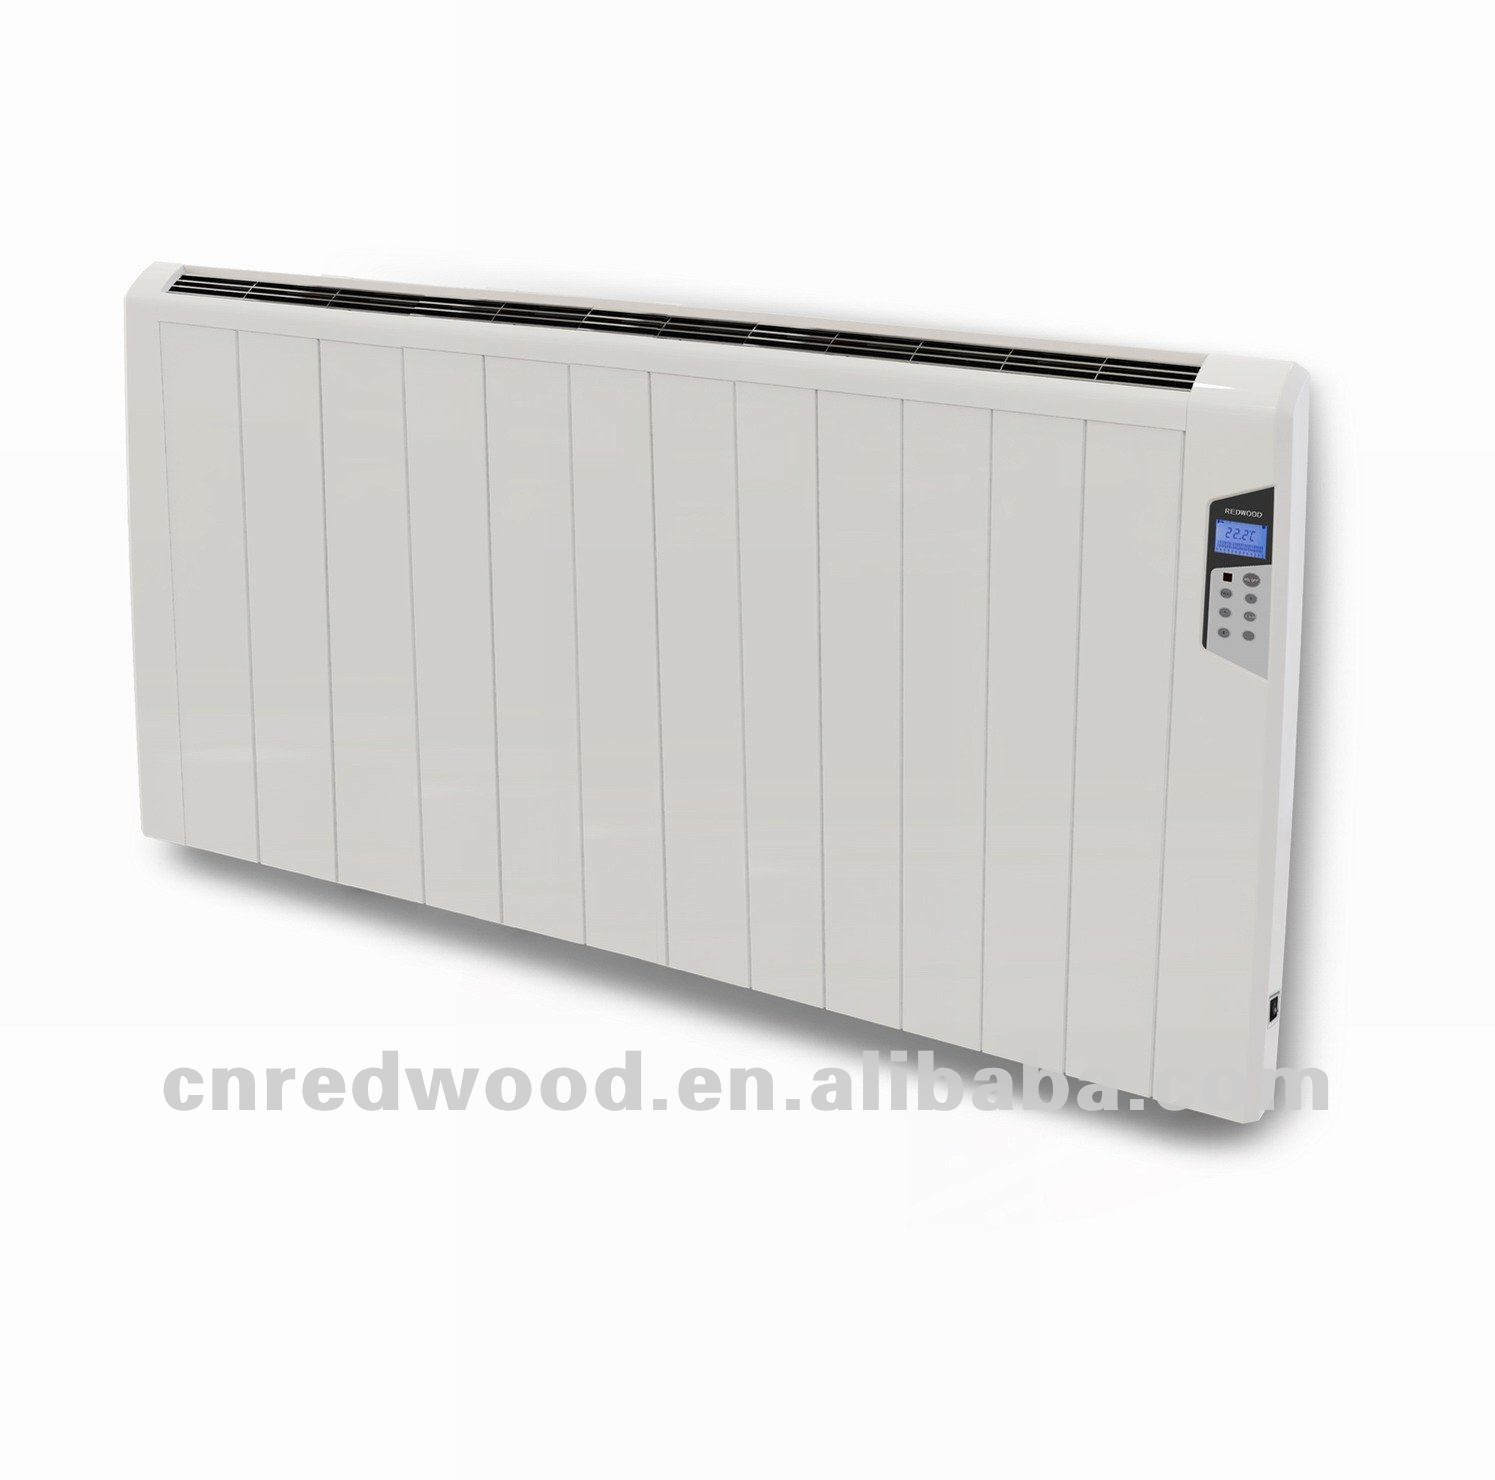 Electric Baseboard Heat Repair as well Wiring Diagram For Ruud Heat Pump in addition Heat Wiring Diagram moreover Window Air Conditioner Wiring Schematic likewise Tempstar Furnace Diagram. on ameristar heat pump wiring diagram